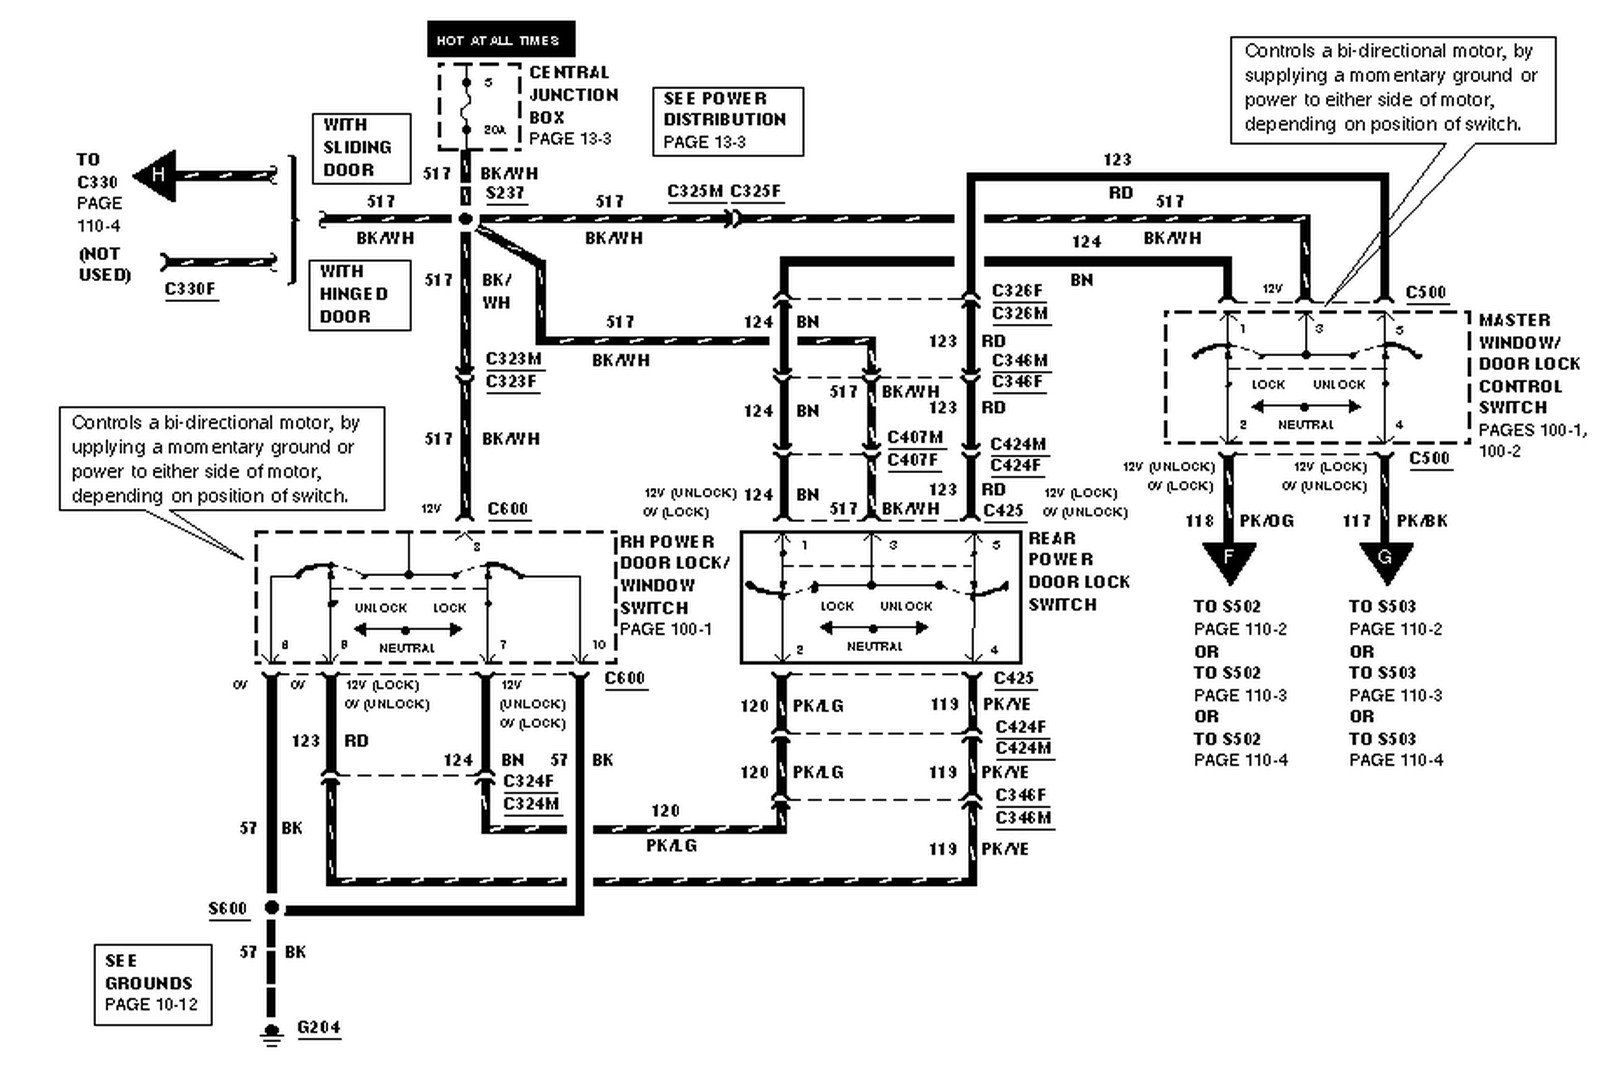 2003 ford e350 starter wiring - 2003 lincoln lbs v8 fuse box diagram -  dvi-d.bmw1992.warmi.fr  wiring diagram resource